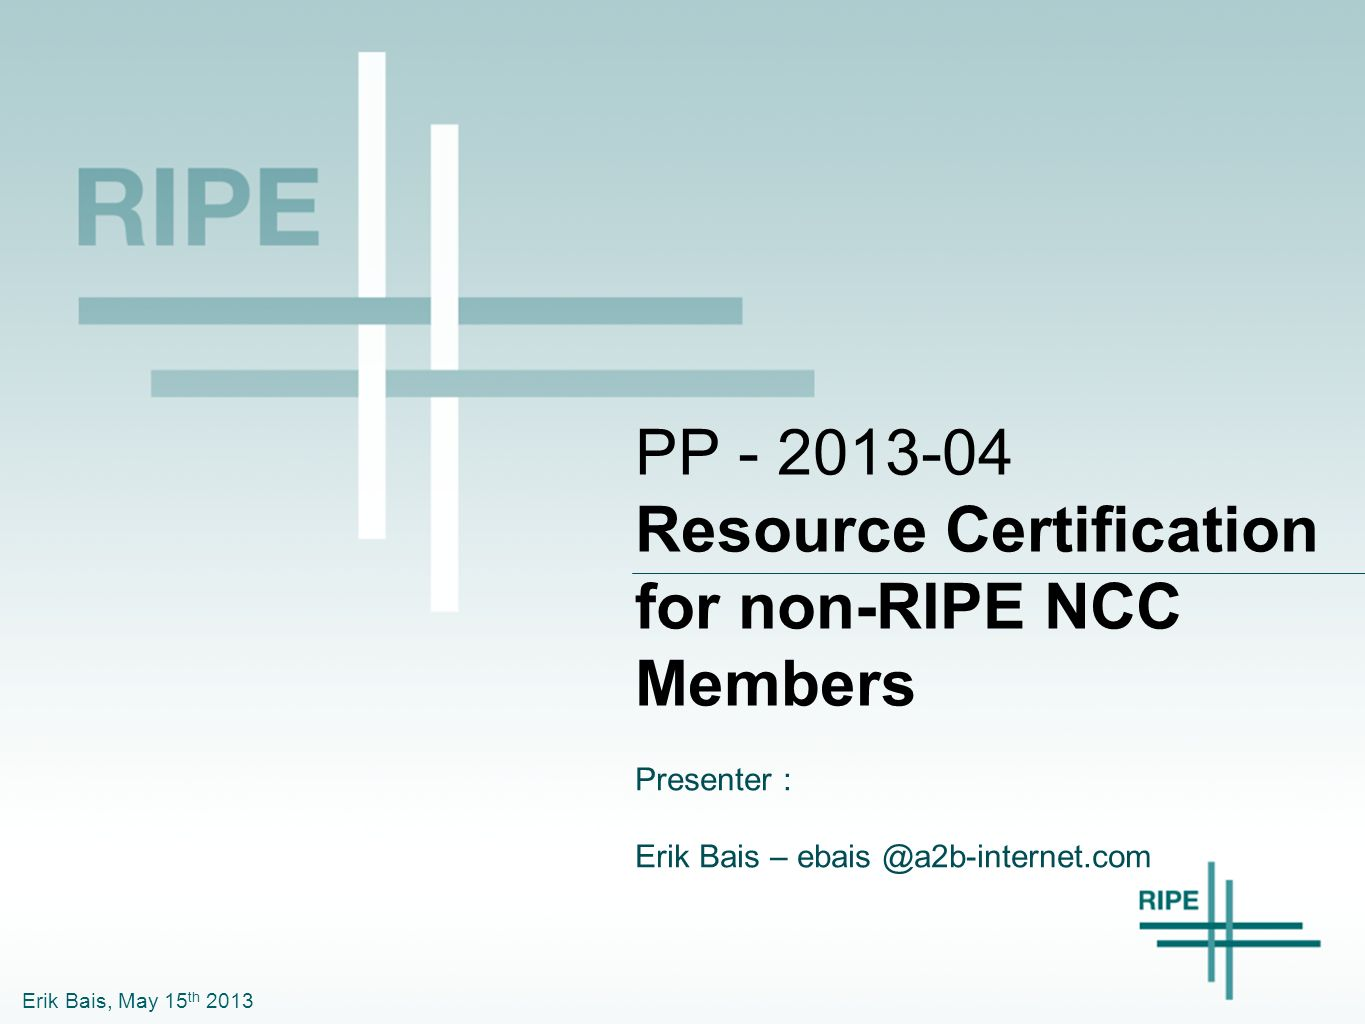 Erik Bais, May 15 th 2013 PP - 2013-04 Resource Certification for non-RIPE NCC Members Presenter : Erik Bais – ebais @a2b-internet.com